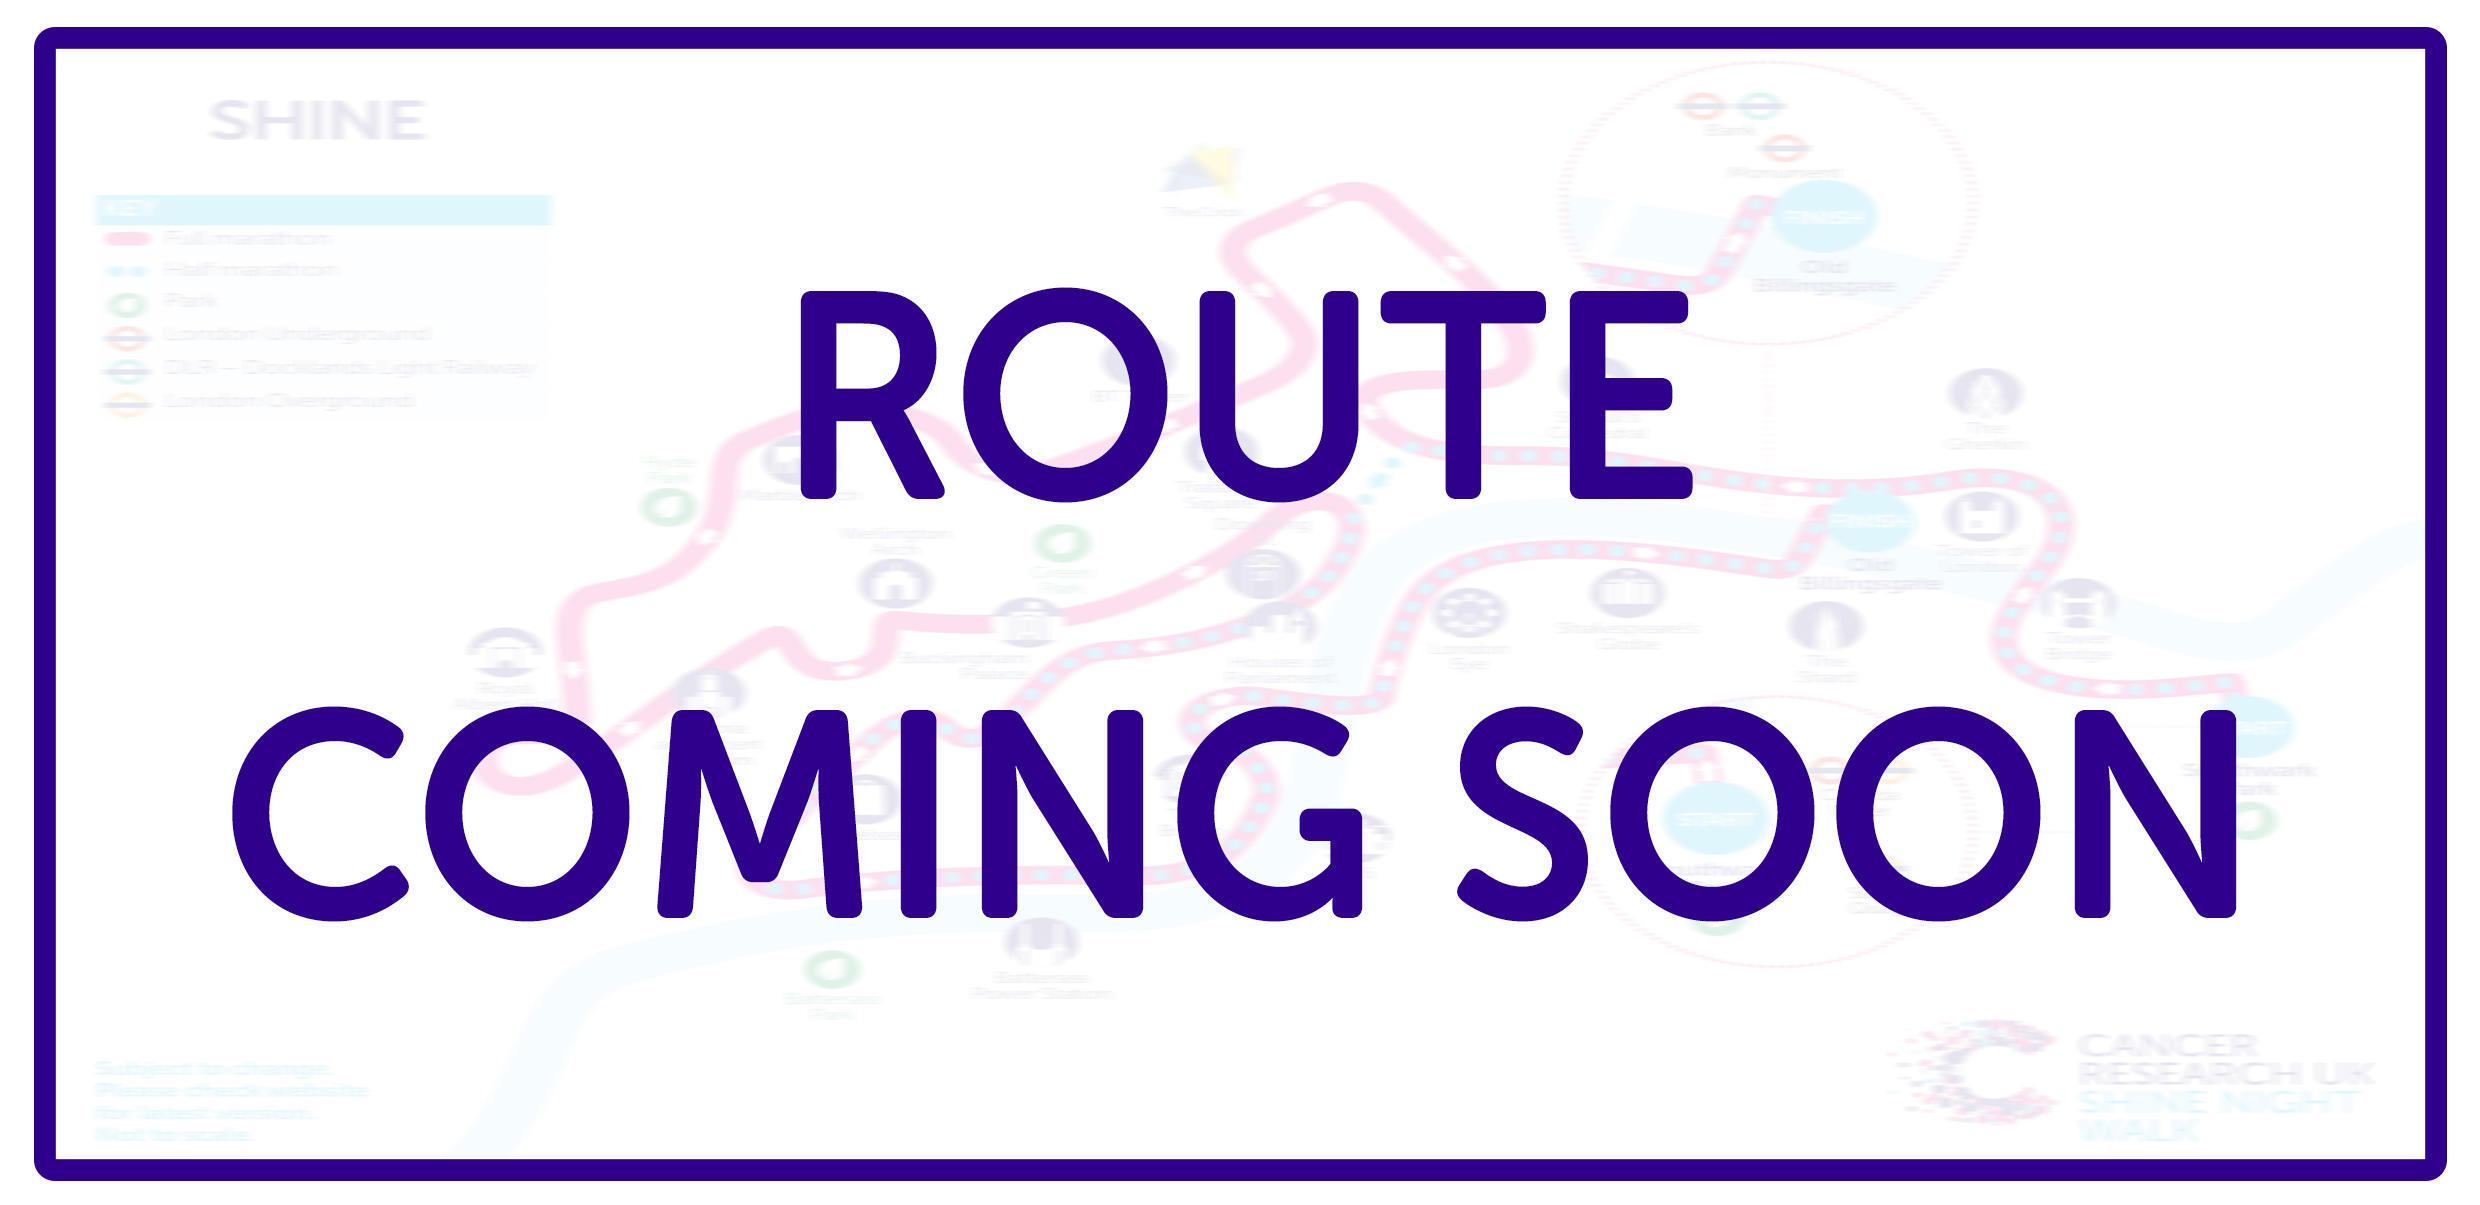 Route coming soon